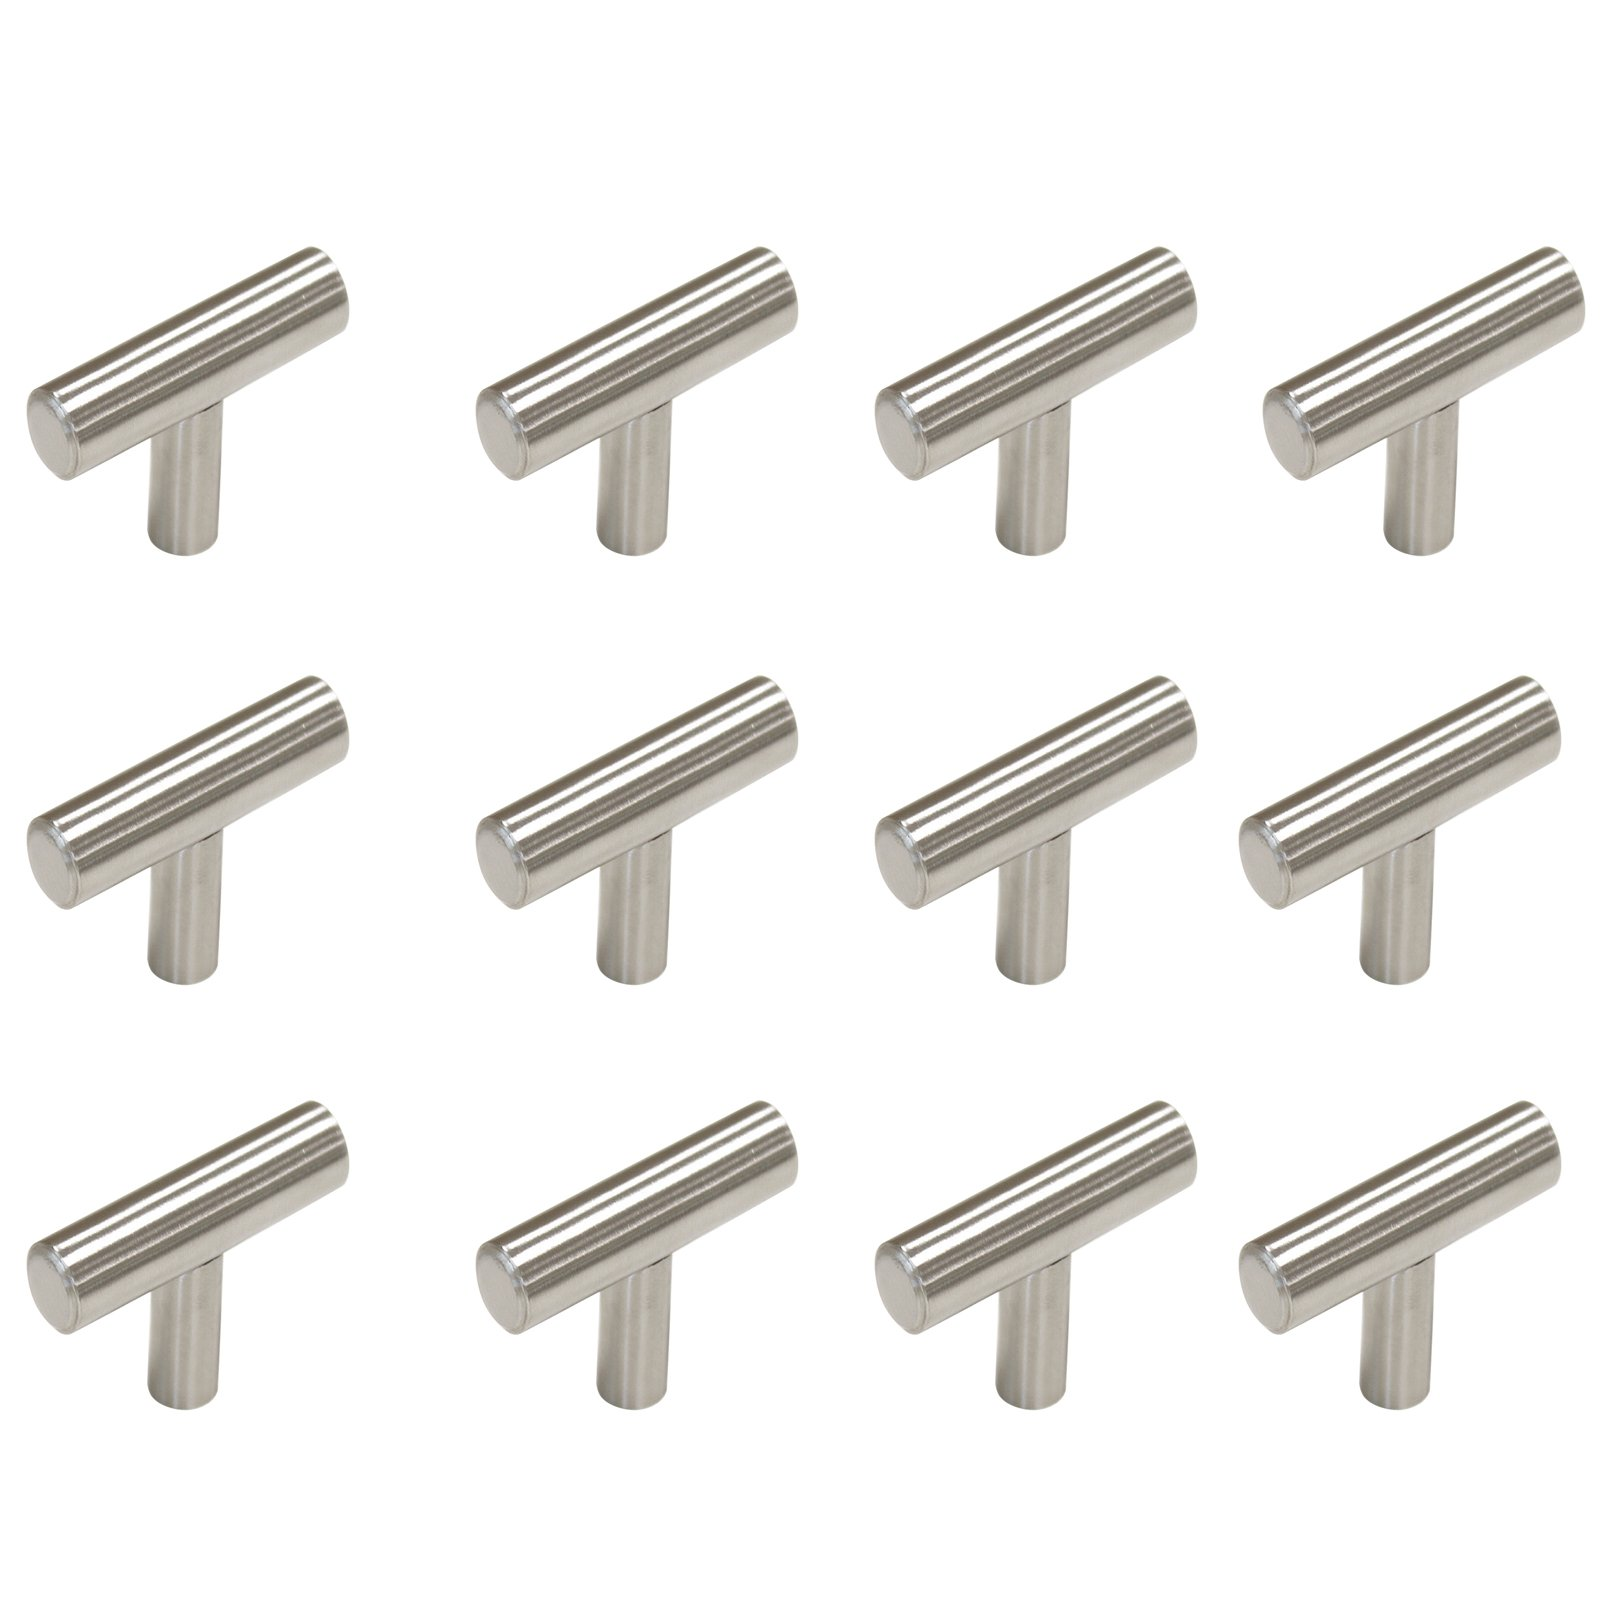 Gobrico Kitchen Cabinet Drawer Handles And Pulls Stainless Steel T-bar Knob(Length 50mm/2in 12Pack)